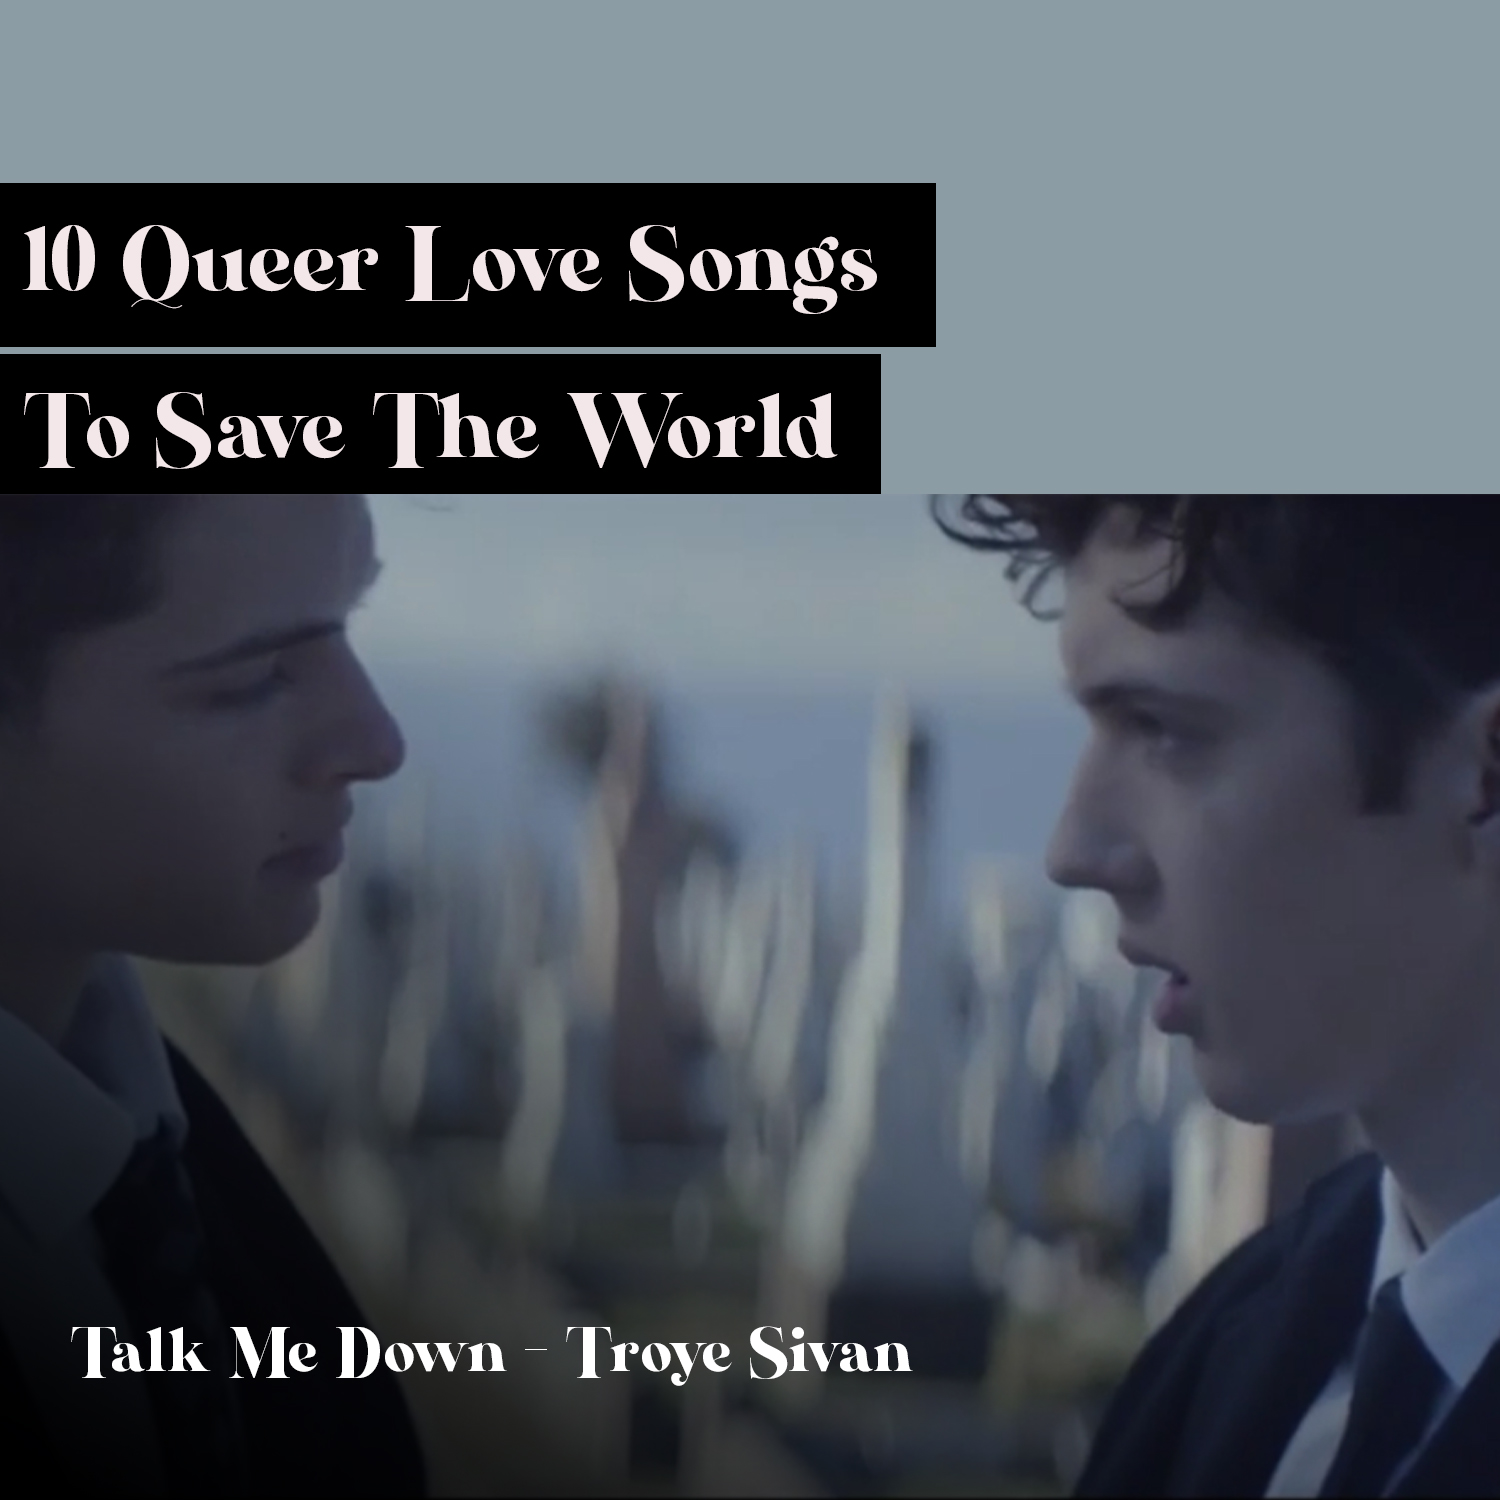 10 Queer Love Songs To Save The World